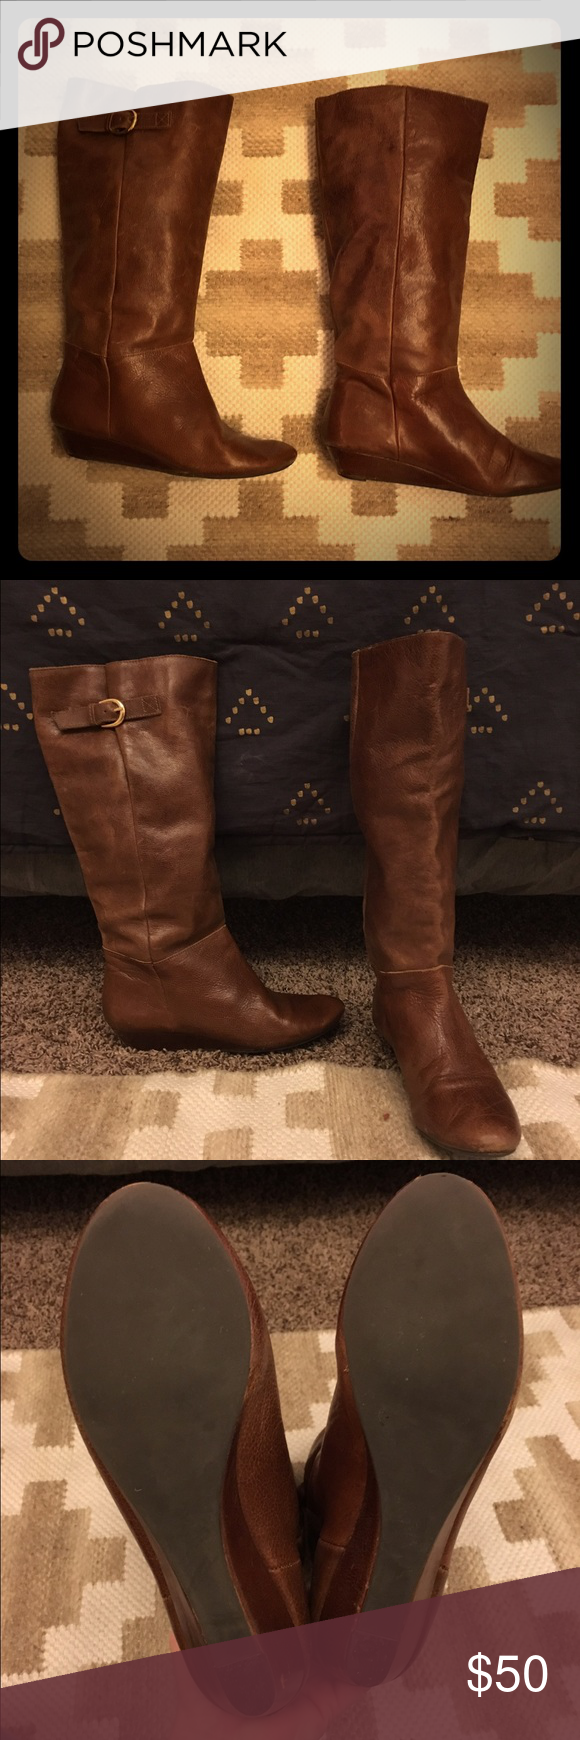 Steve Madden Intyce boots Steve Madden calf boots. Aged brown in color, gold buckle on the outside of both boots. Lightly worn. DOES SHOW SIGNS OF WEAR ON THE HEELS. Please make sure and review ALL of the pictures. Small wedge heel. I'm honestly not sure if these are real leather or not. Steve Madden Shoes Heeled Boots